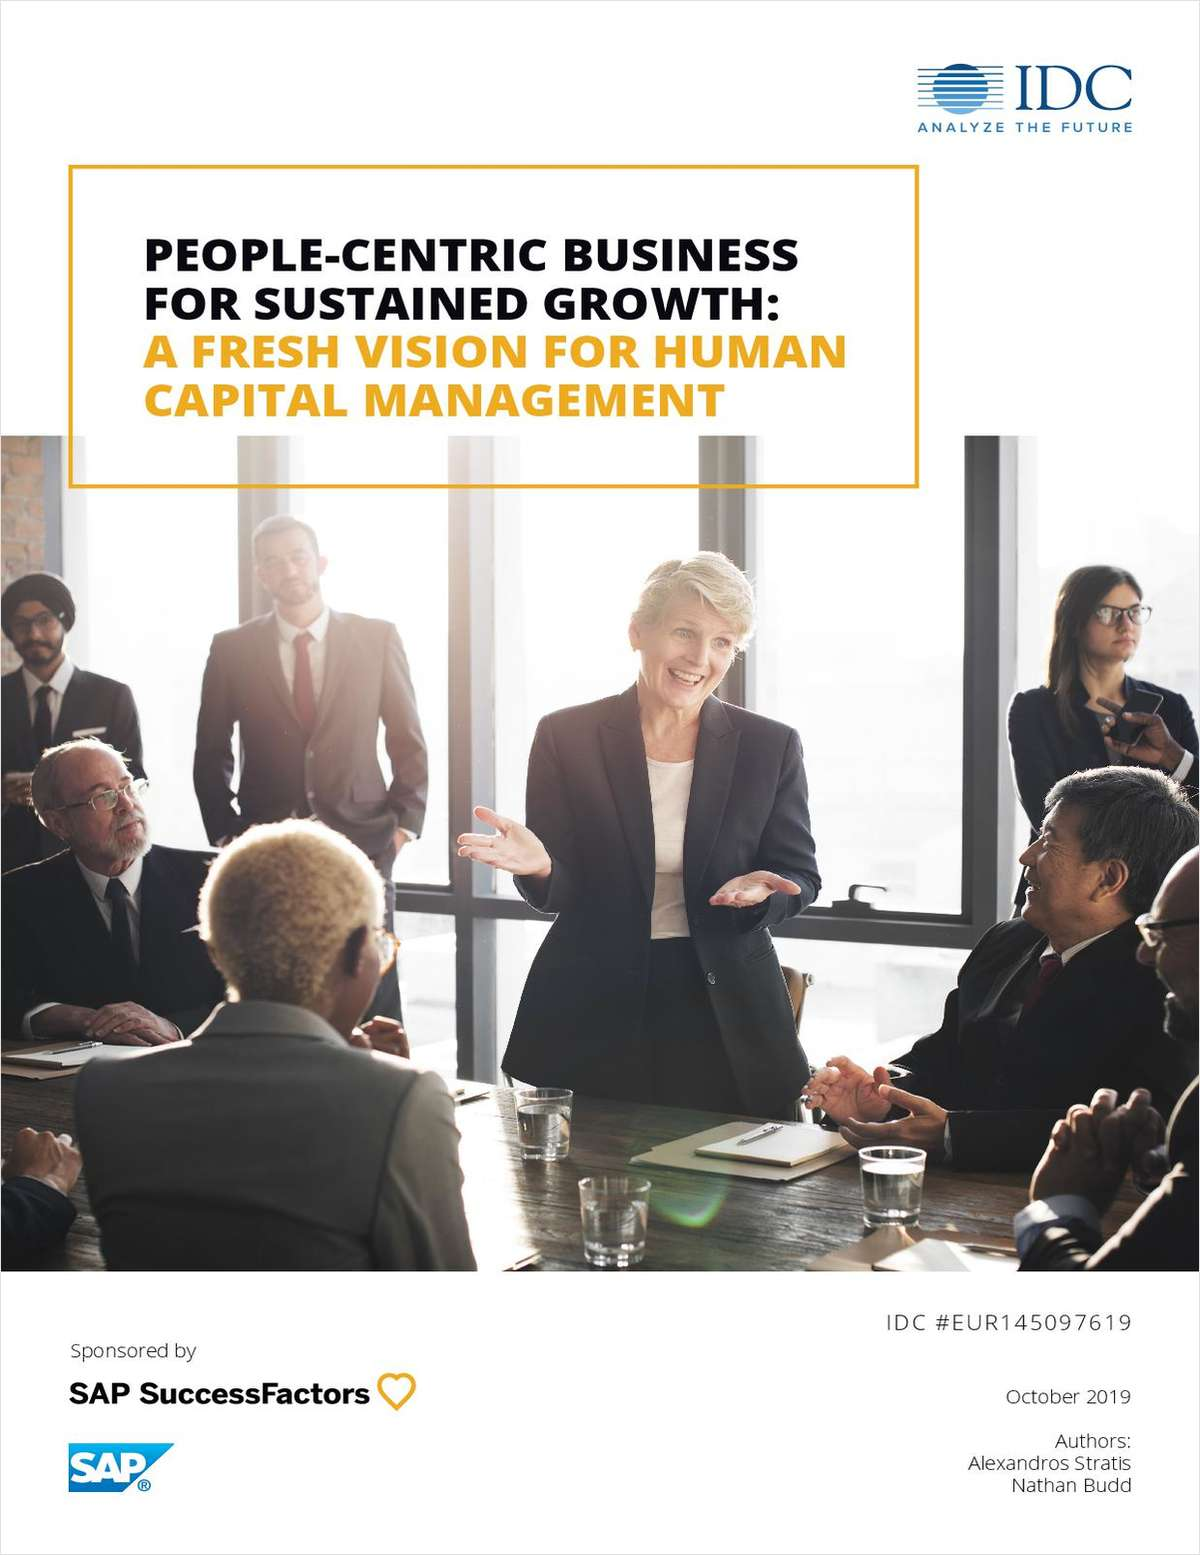 A New Vision for Human Capital Management